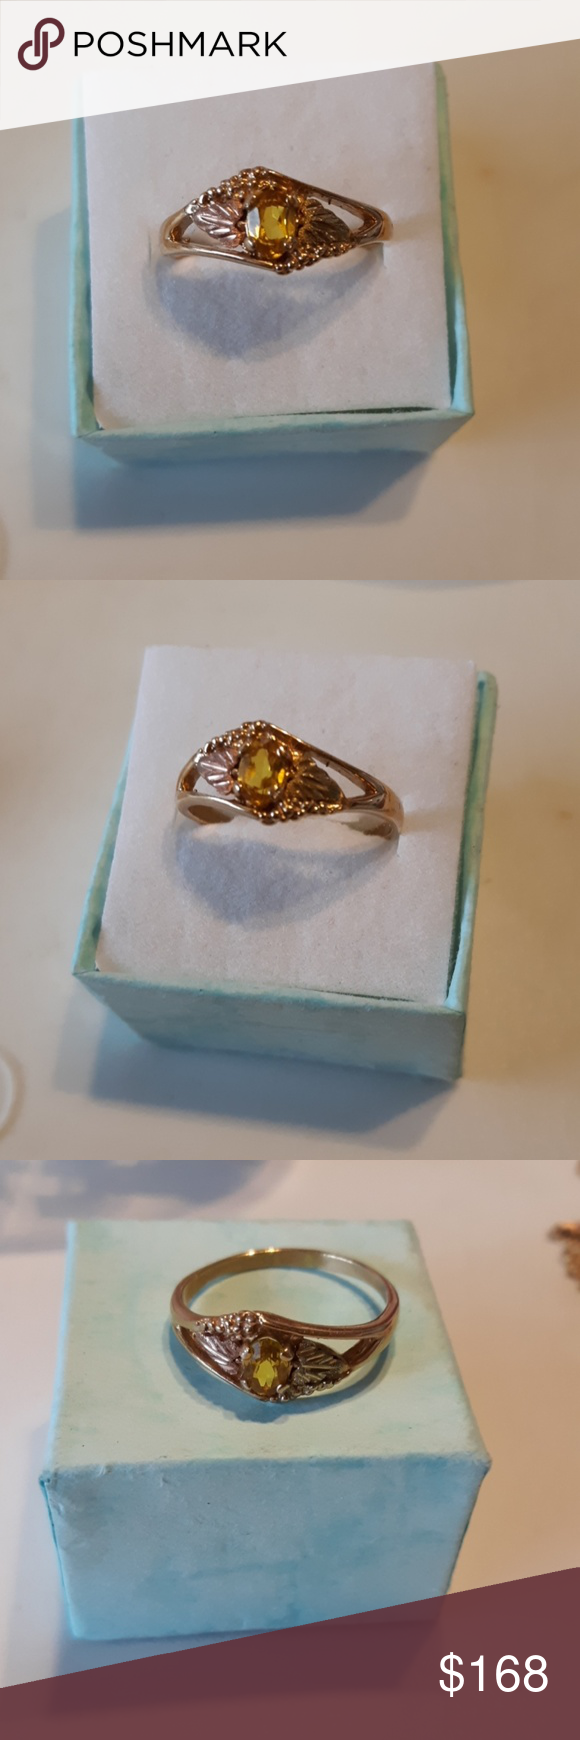 Sold Black Hills Gold 10k Gold Citrine Ring Black Hills Gold Black Hills Gold Jewelry Black Hills Gold Rings